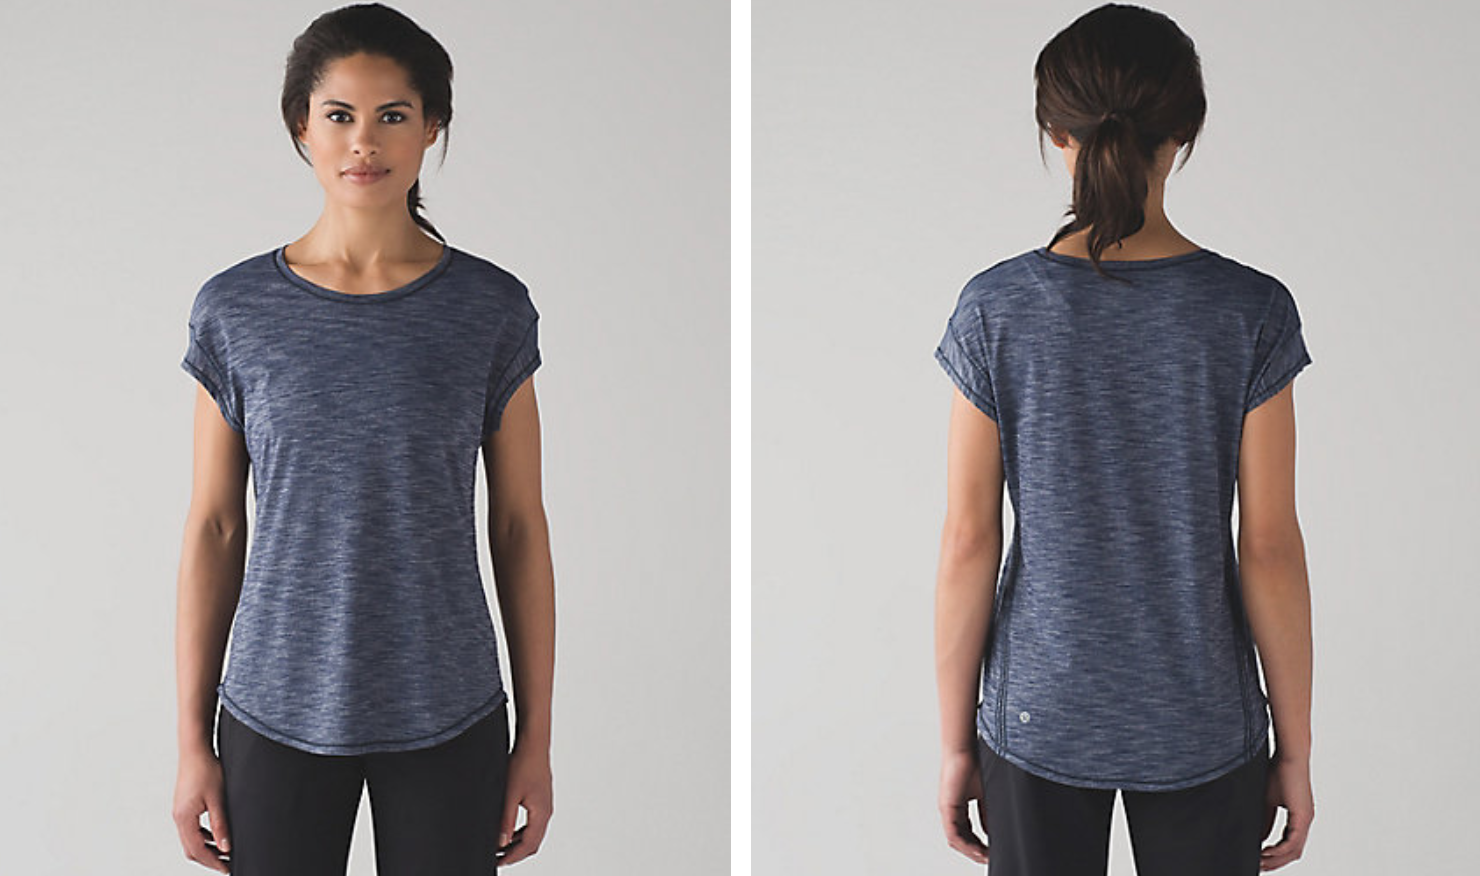 https://api.shopstyle.com/action/apiVisitRetailer?url=https%3A%2F%2Fshop.lululemon.com%2Fp%2Ftops-short-sleeve%2FLost-In-Pace-Ss%2F_%2Fprod8430908%3Frcnt%3D9%26N%3D1z13ziiZ7vf%26cnt%3D64%26color%3DLW3AKUS_021585&site=www.shopstyle.ca&pid=uid6784-25288972-7